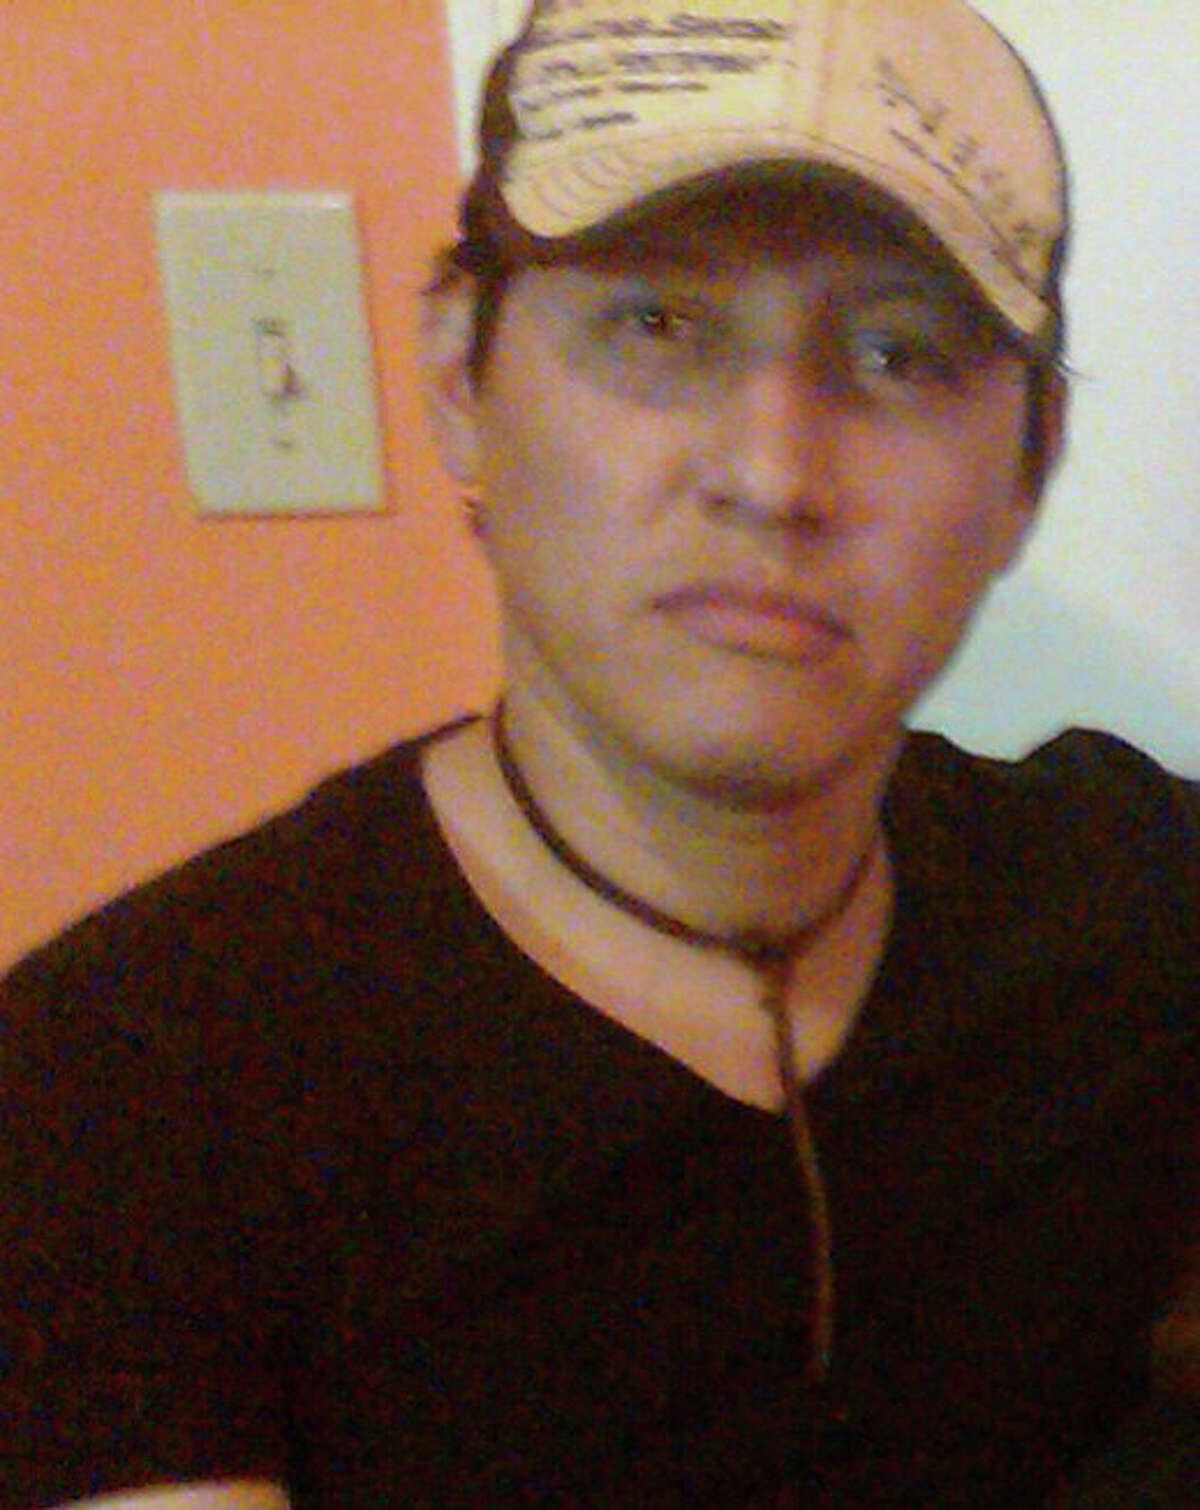 May 1, 2011: Leonel Antonio Rios Hernandez, 30, was found brutally killed in an East Side apartment. Police have arrested no suspects.